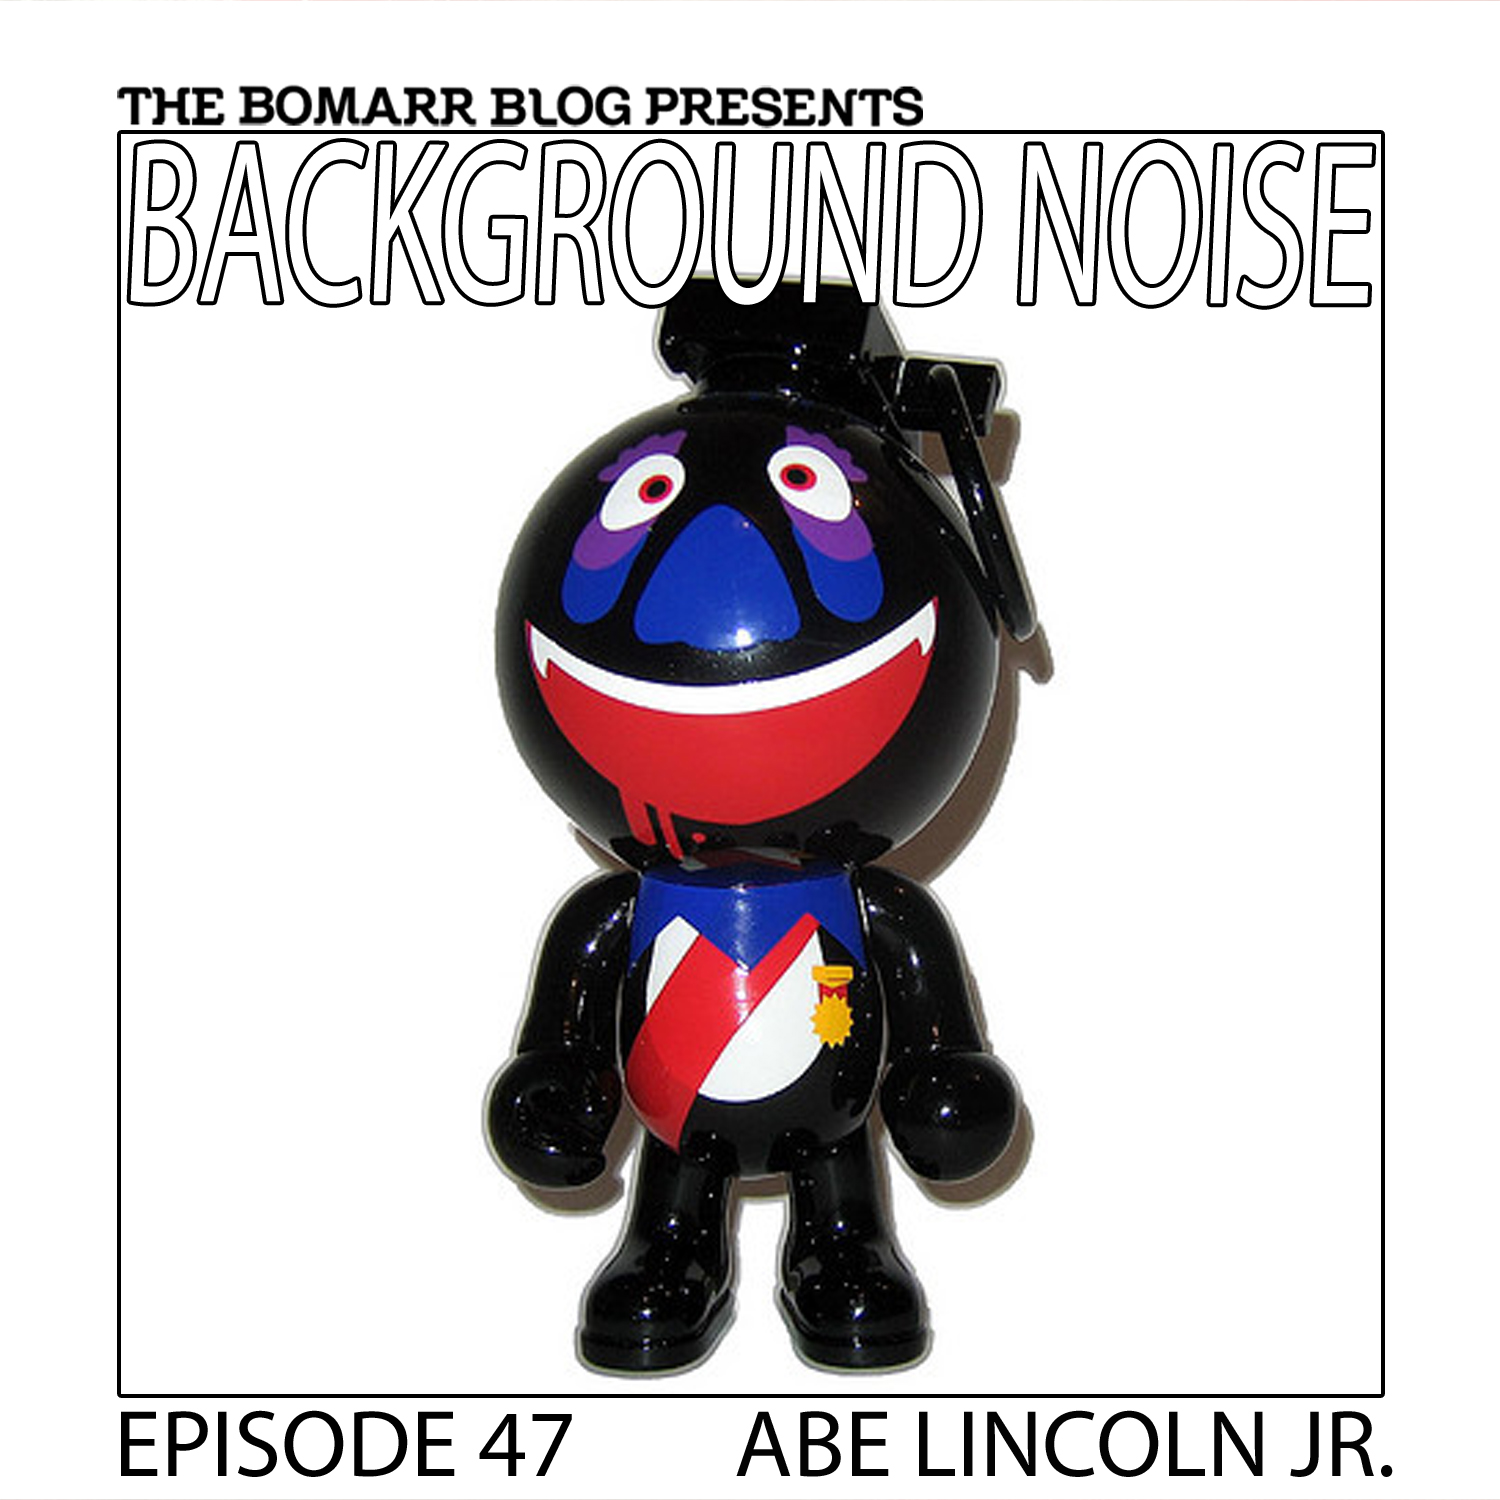 """THE """"BACKGROUND NOISE"""" PODCAST SERIES FOCUSES ON THE MUSIC THAT ARTISTS LISTEN TO WHEN THEY WORK, WHAT MUSIC INSPIRES THEM, OR JUST MUSIC THEY LIKE. THIS WEEK, IN EPISODE 47, THE FOCUS IS ON ARTIST ABE LINCOLN JR."""